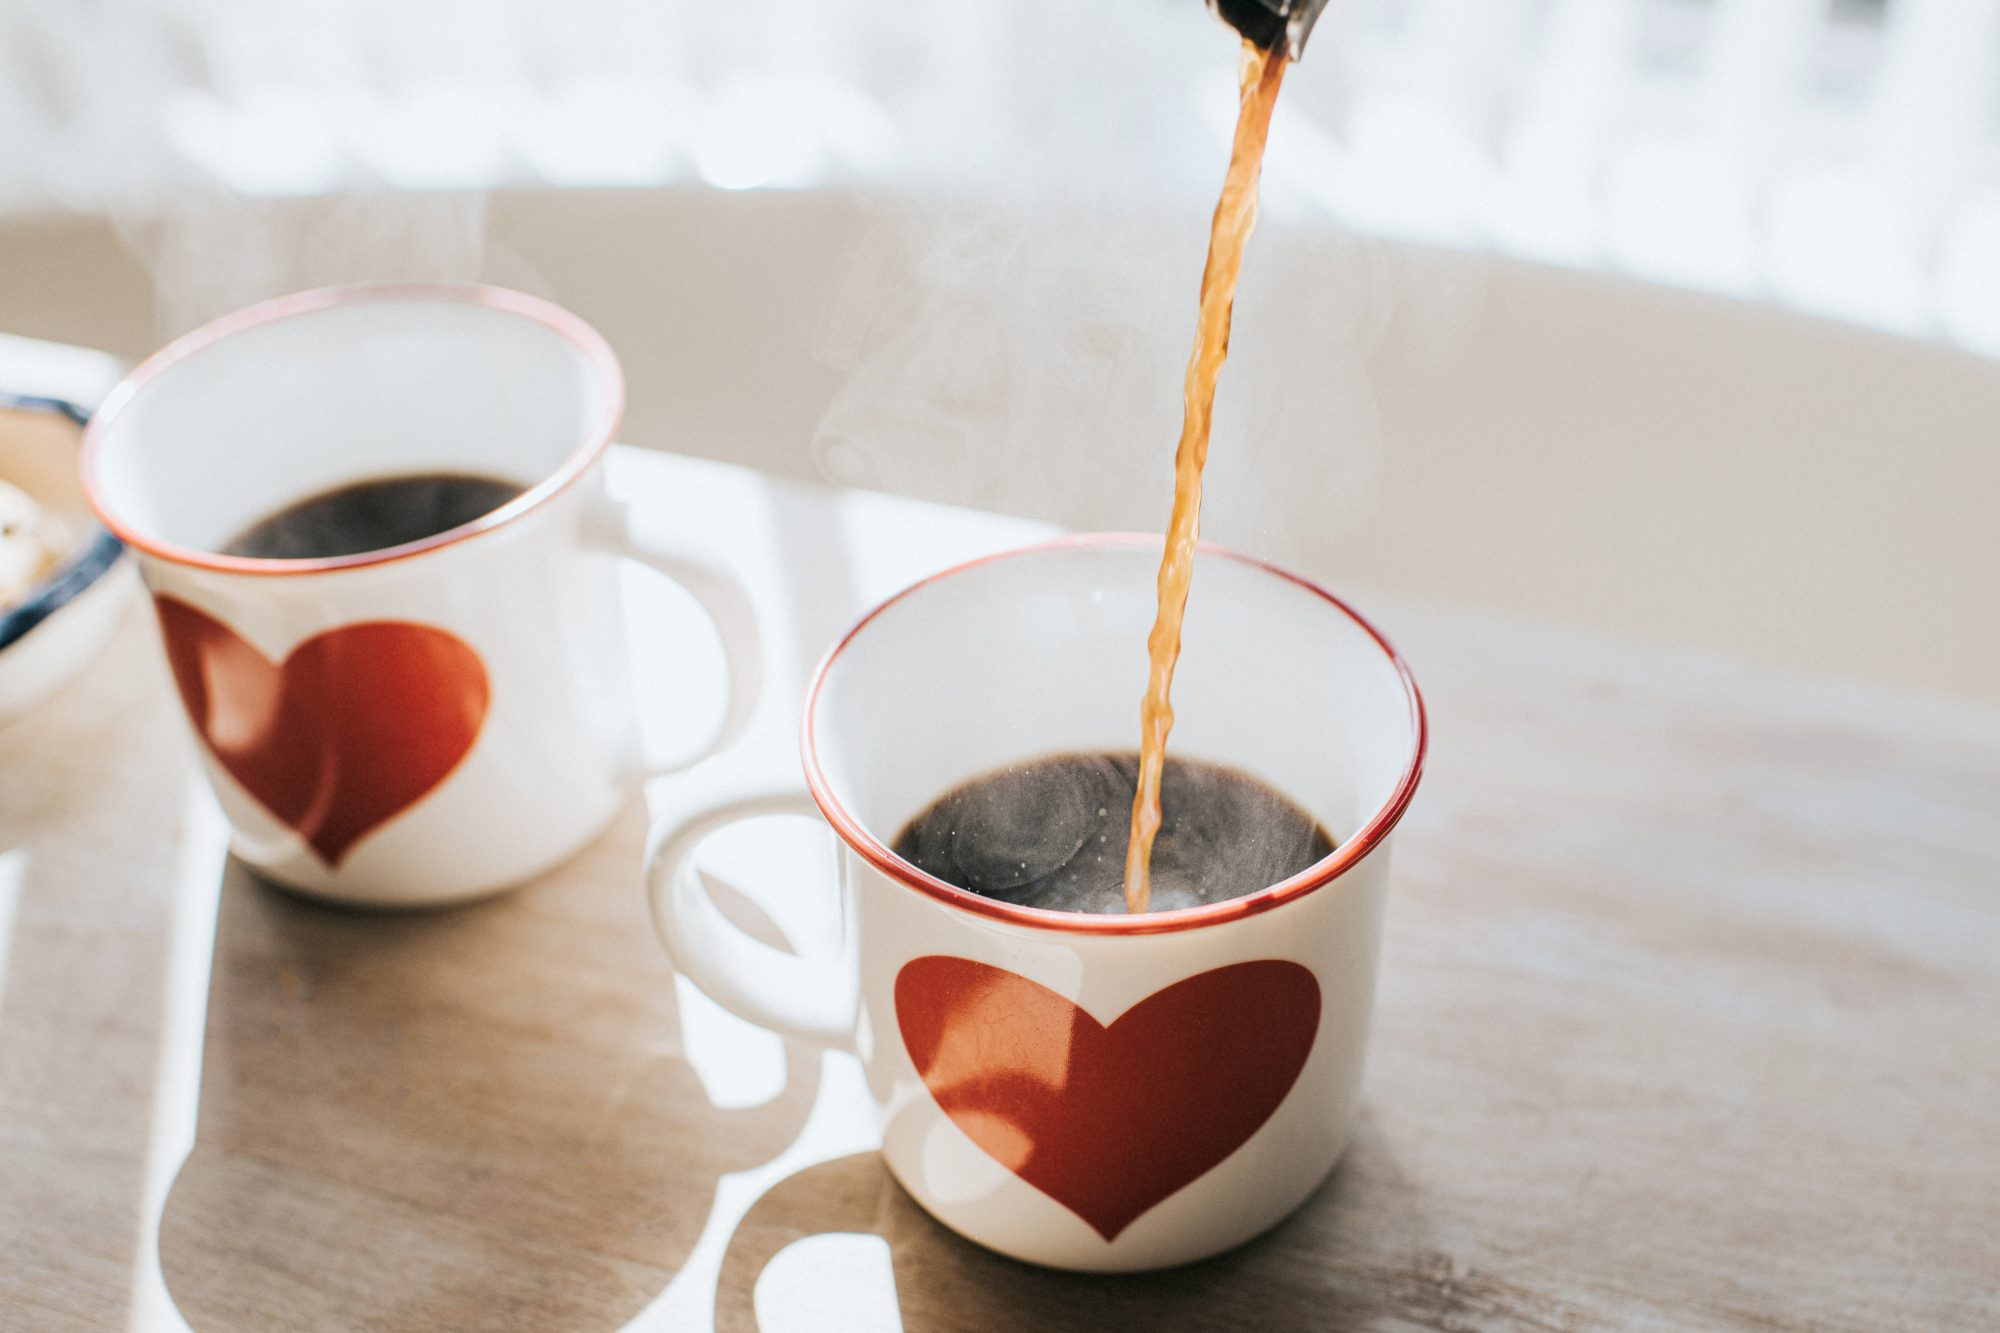 Drinking Three Cups Of Coffee Each Day Could Boost Your Heart Health